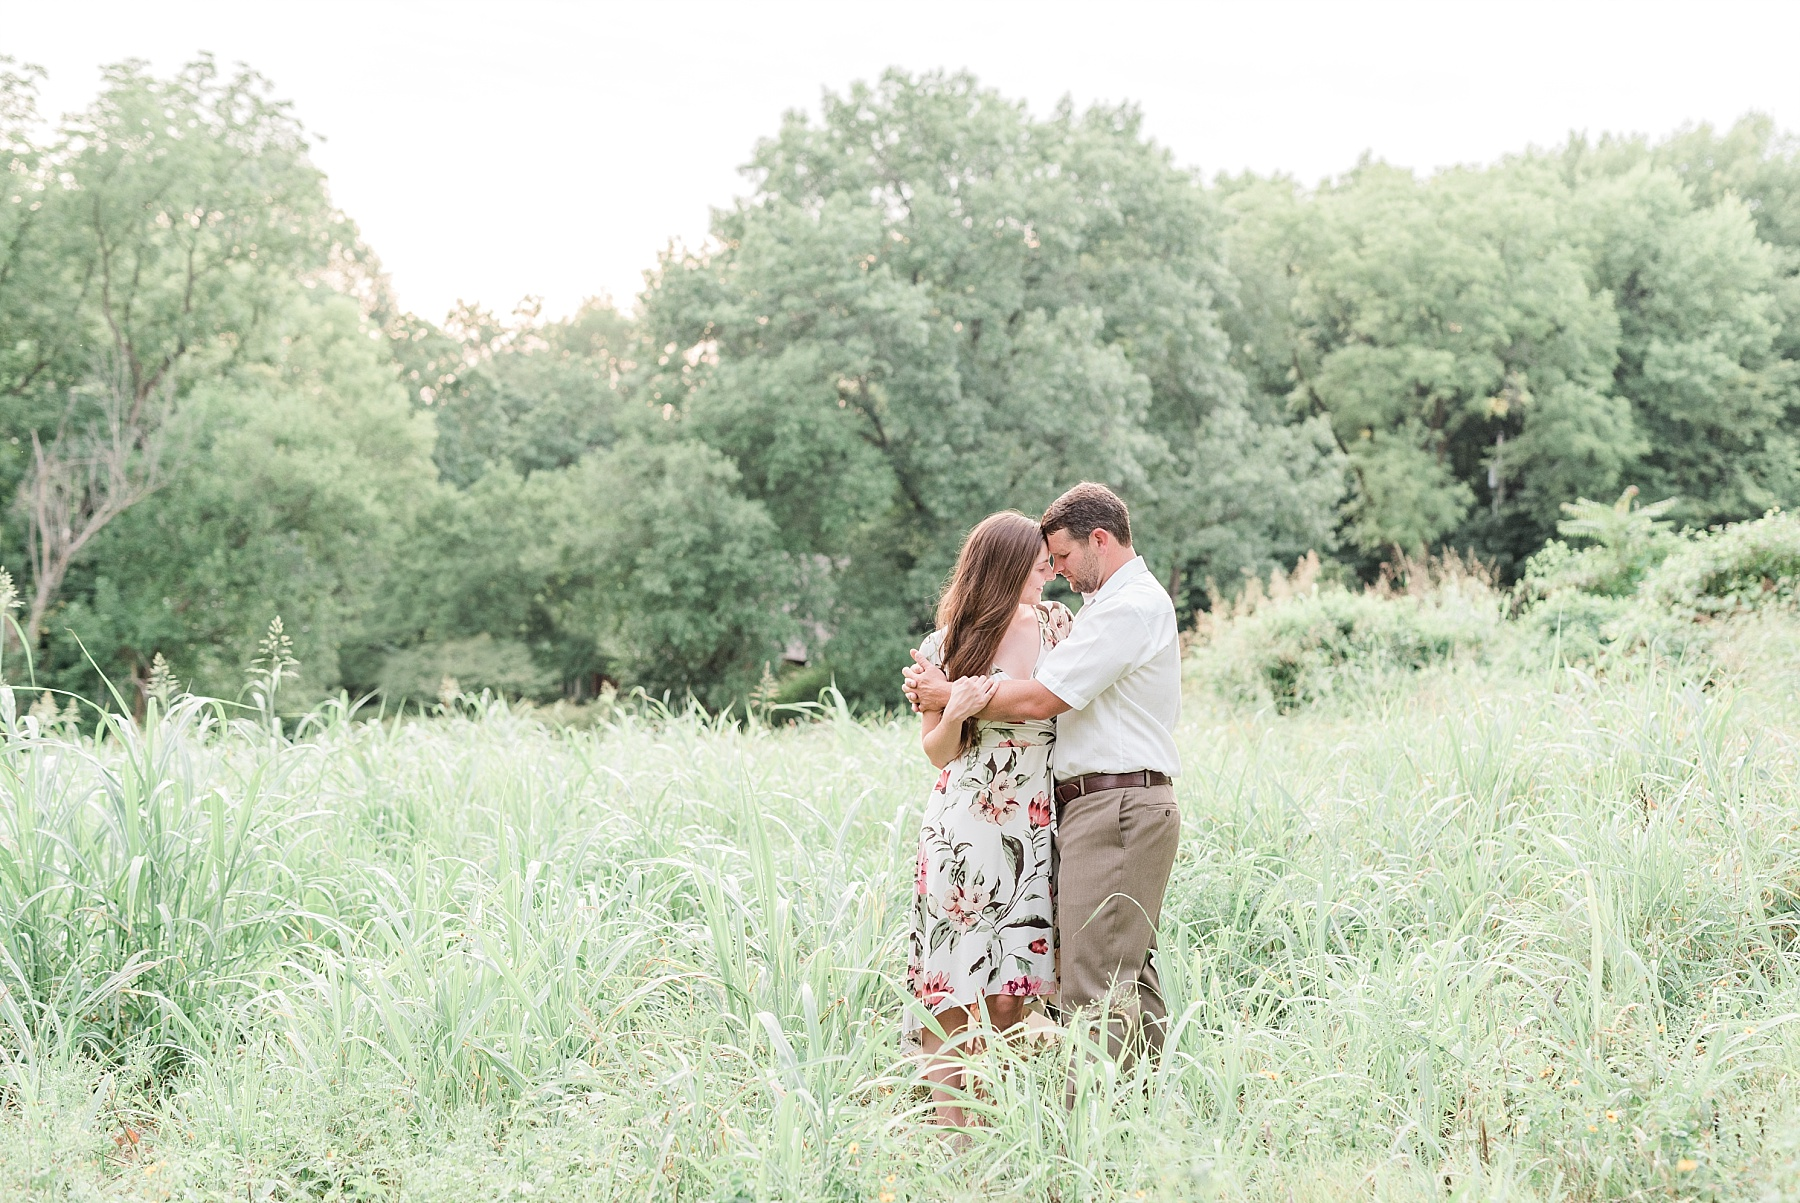 Sunset Engagement Session at Faust Park Chesterfield Missouri by Kelsi Kliethermes Photography_0025.jpg